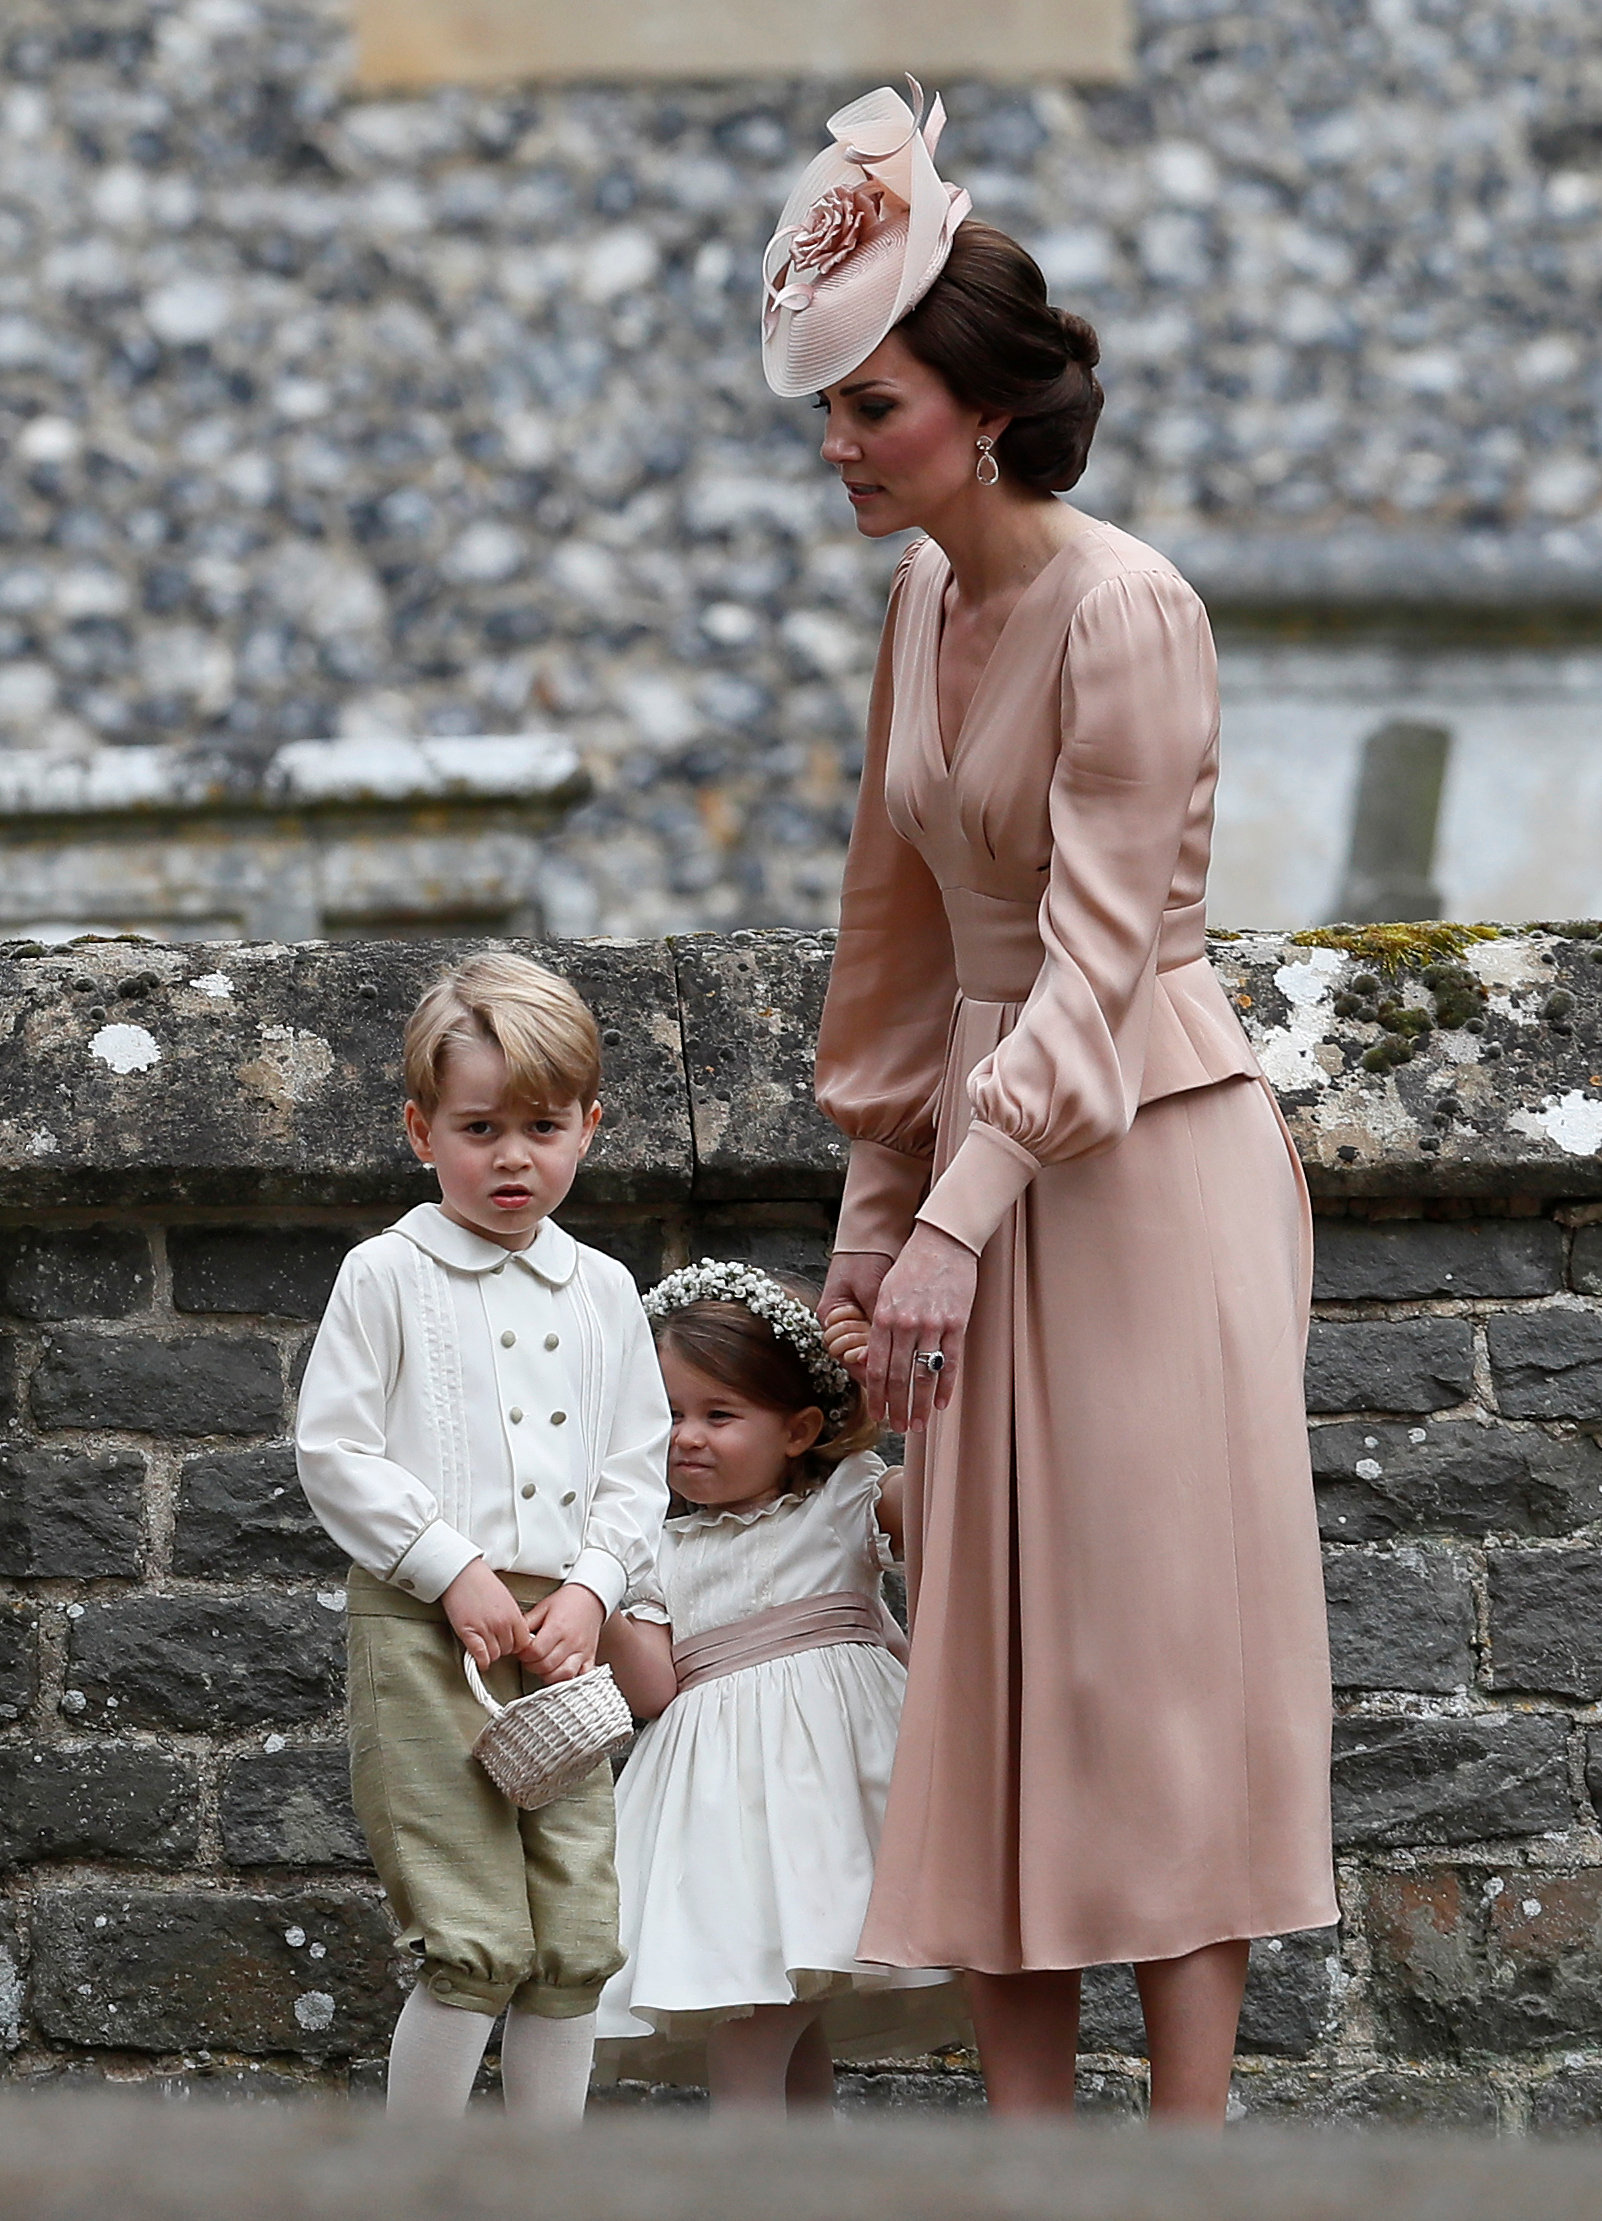 Catherine, Duchess of Cambridge, stands with Princess Charlotte and Prince George, who were flower boys and girls at the wedding of Pippa Middleton and James Matthews at St Mark's Church in Englefield, Britain May 20, 2017. REUTERS/Kirsty Wigglesworth/Pool